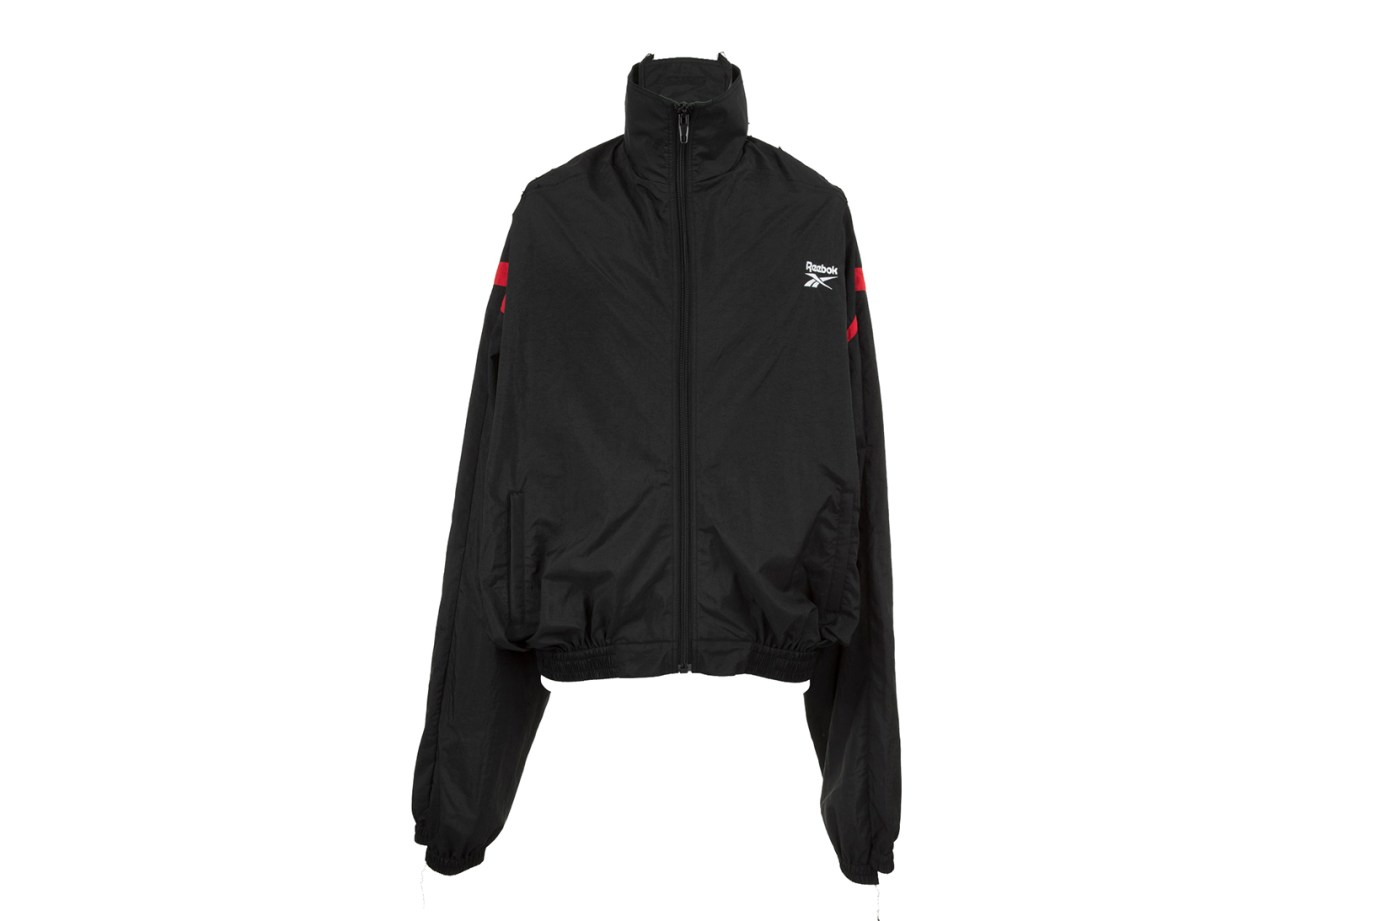 vetements-reebok-track-jacket-rework-01